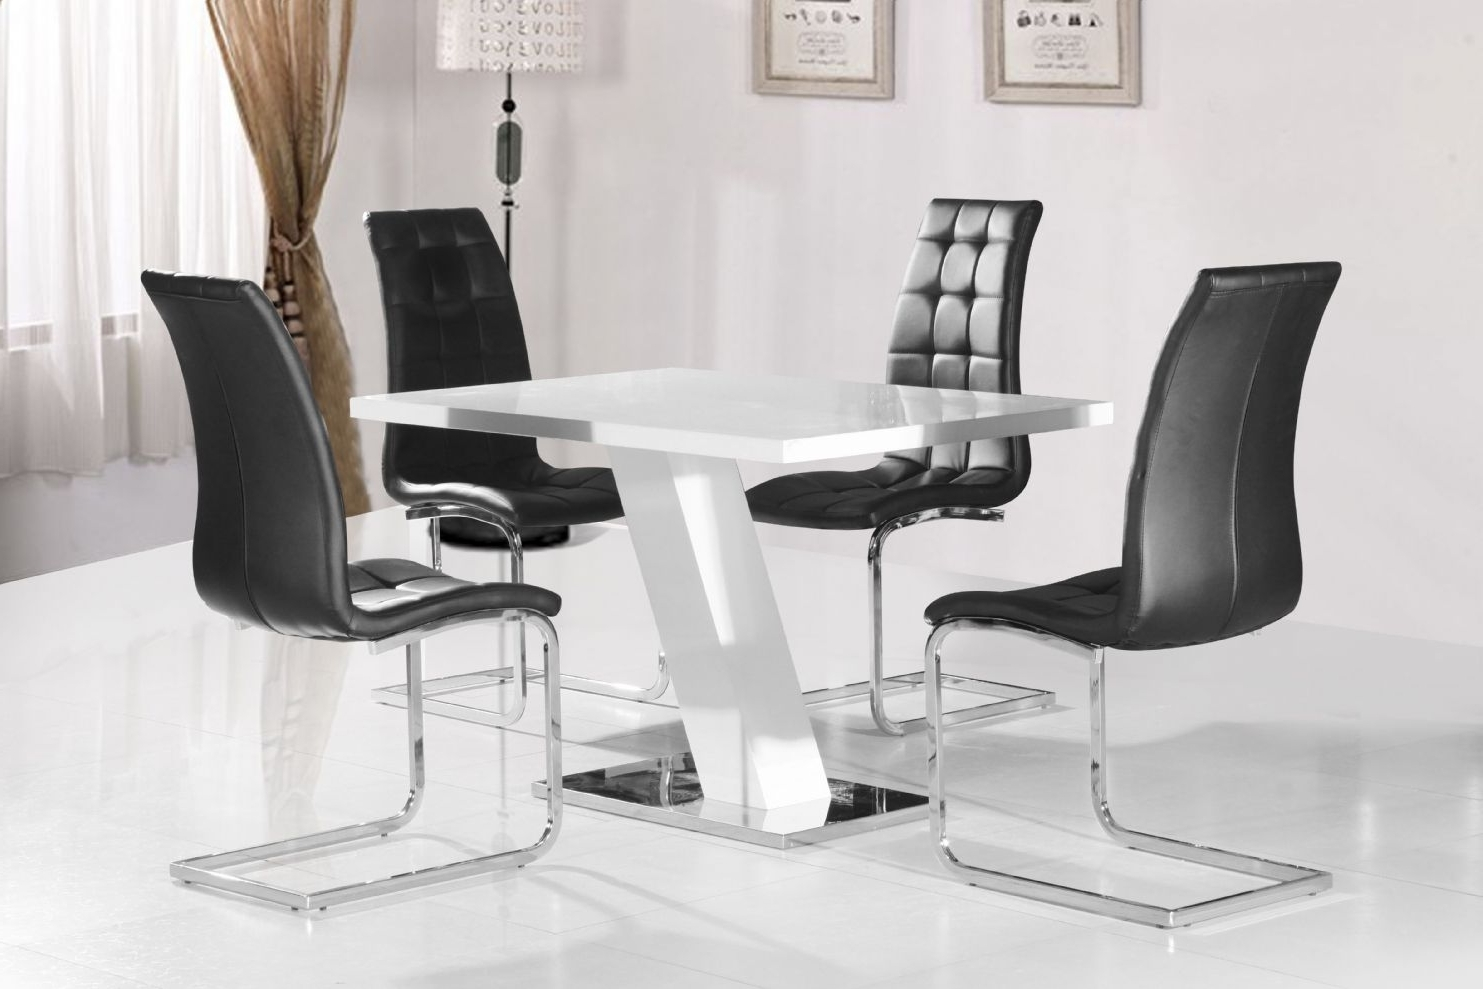 Trendy White High Gloss Dining Tables Regarding Grazia White High Gloss Contemporary Designer 120 Cm Compact Dining (View 16 of 25)